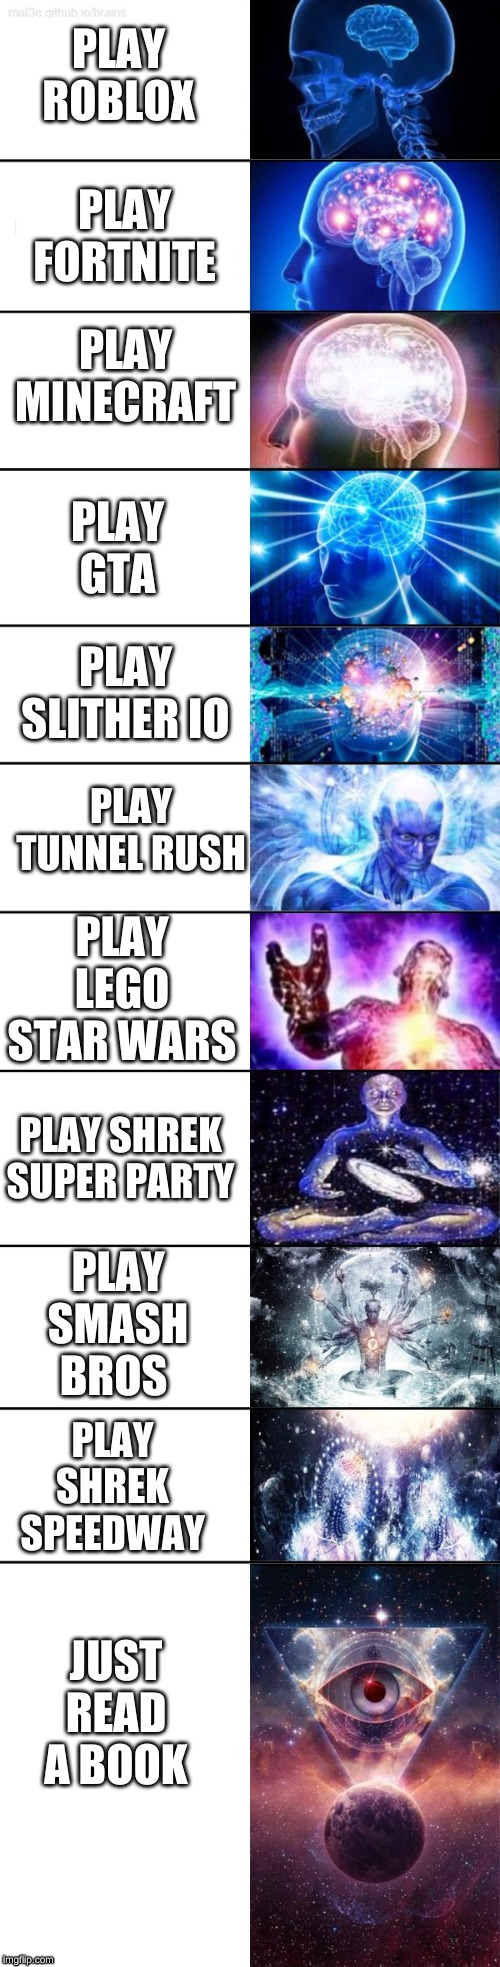 True | PLAY ROBLOX PLAY FORTNITE PLAY MINECRAFT PLAY GTA PLAY SLITHER IO PLAY TUNNEL RUSH PLAY LEGO STAR WARS PLAY SHREK SUPER PARTY PLAY SMASH BRO | image tagged in gaming,fun,lol | made w/ Imgflip meme maker